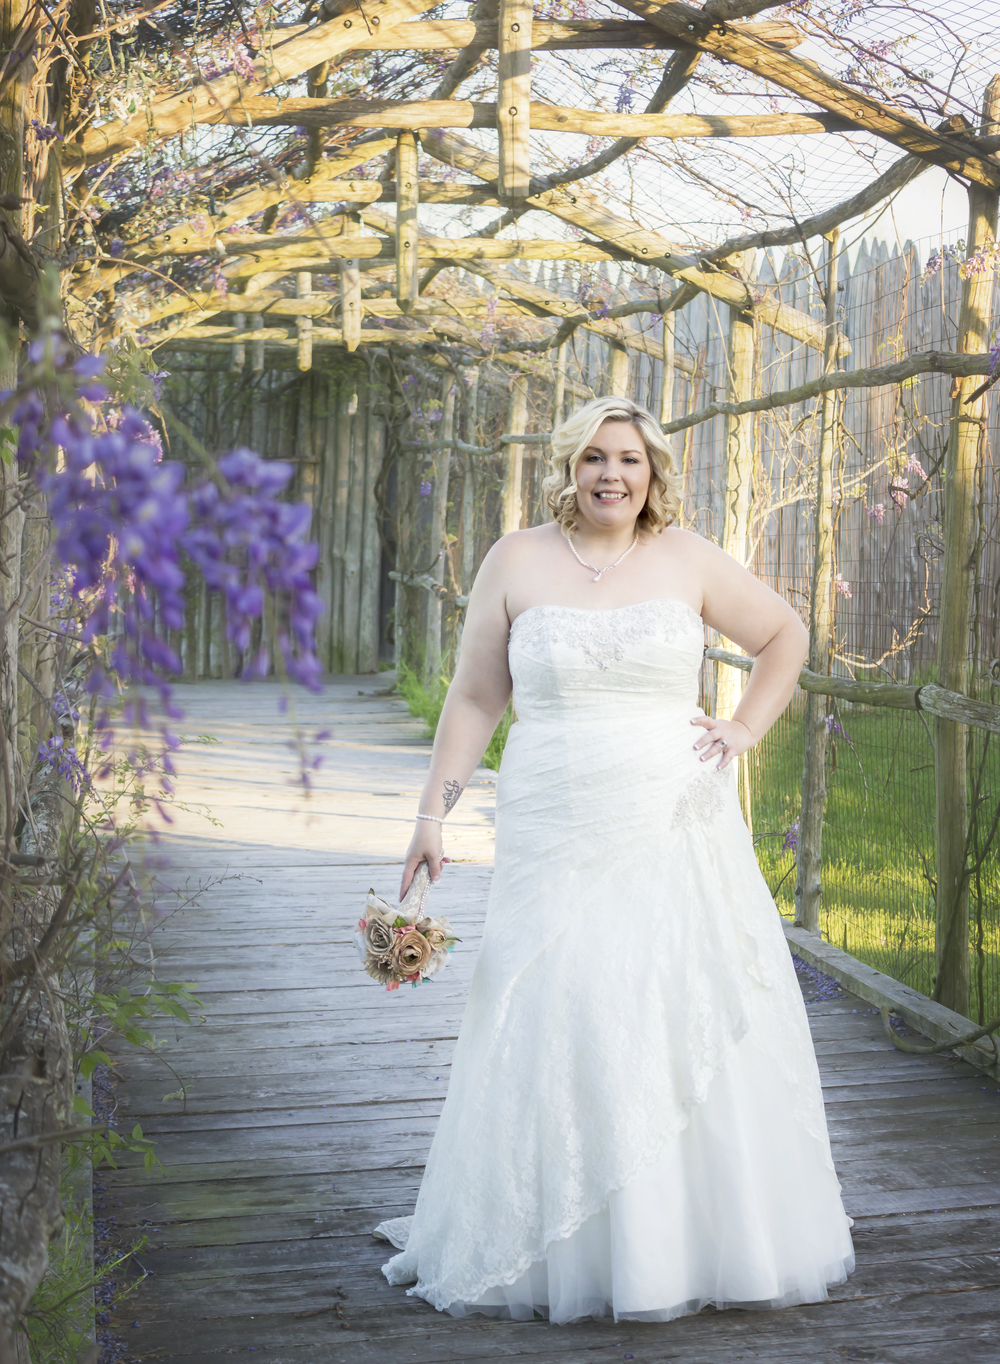 A beautiful bride in a beautiful dress!